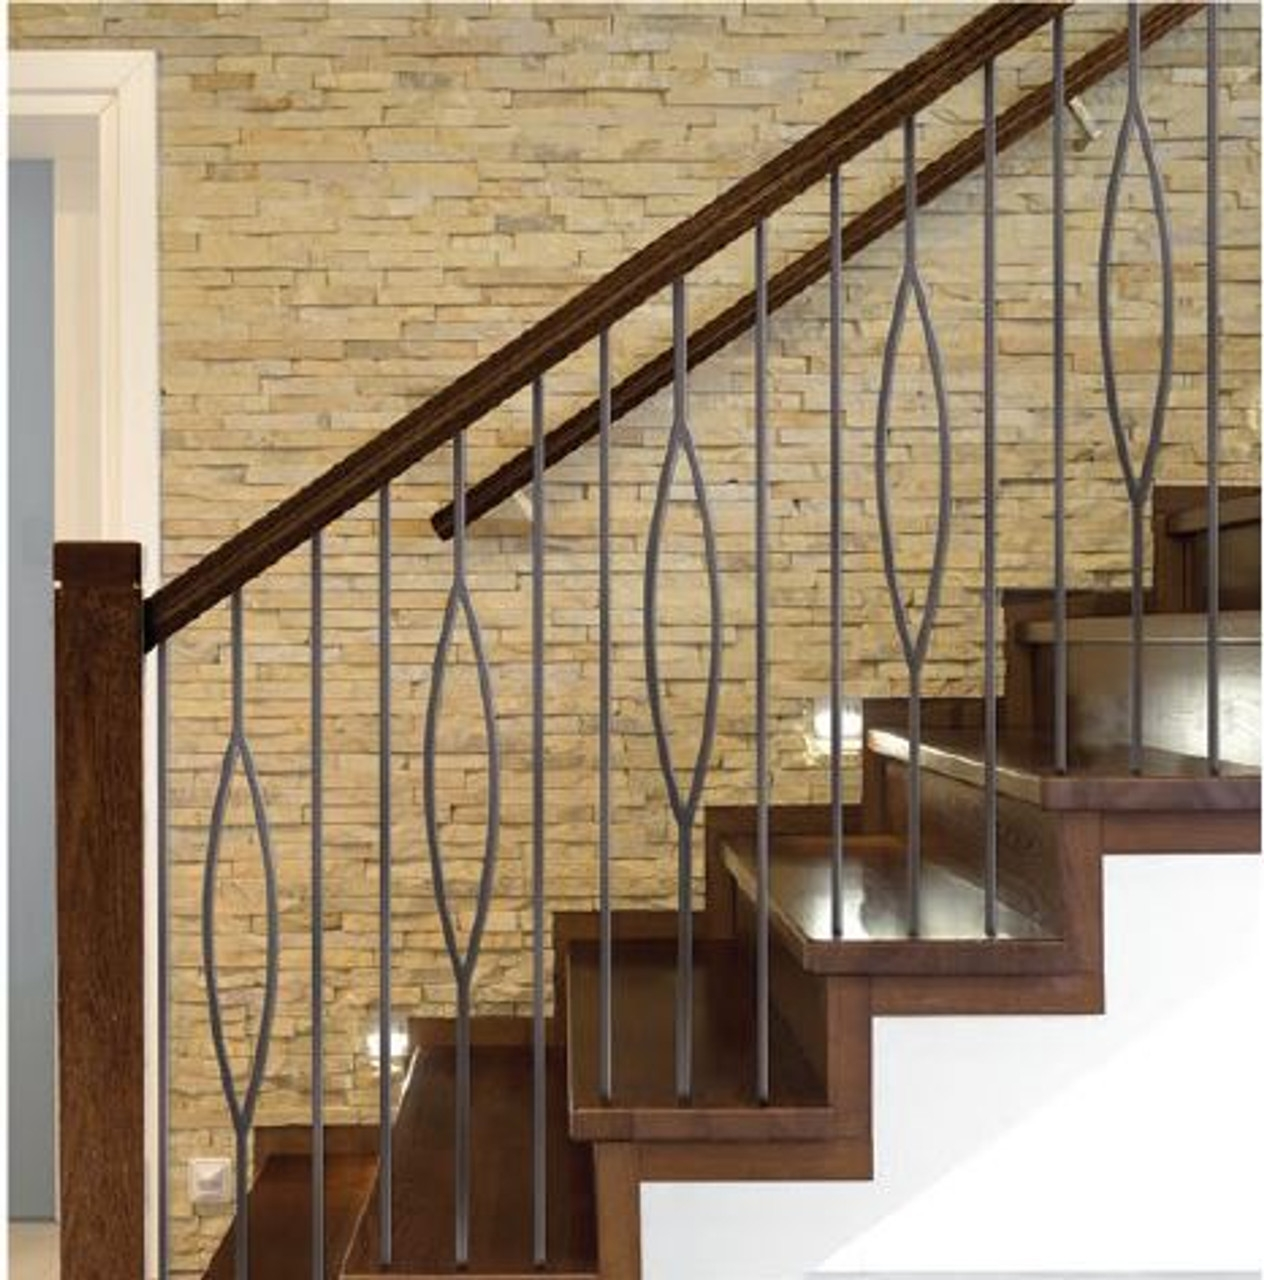 Hf16 6 7 Oval Tubular Steel Baluster Westfire Stair Parts | House Of Forgings Aalto | Stair Parts | Aalto Modern | Aalto Collection | Wrought Iron Baluster | Handrail